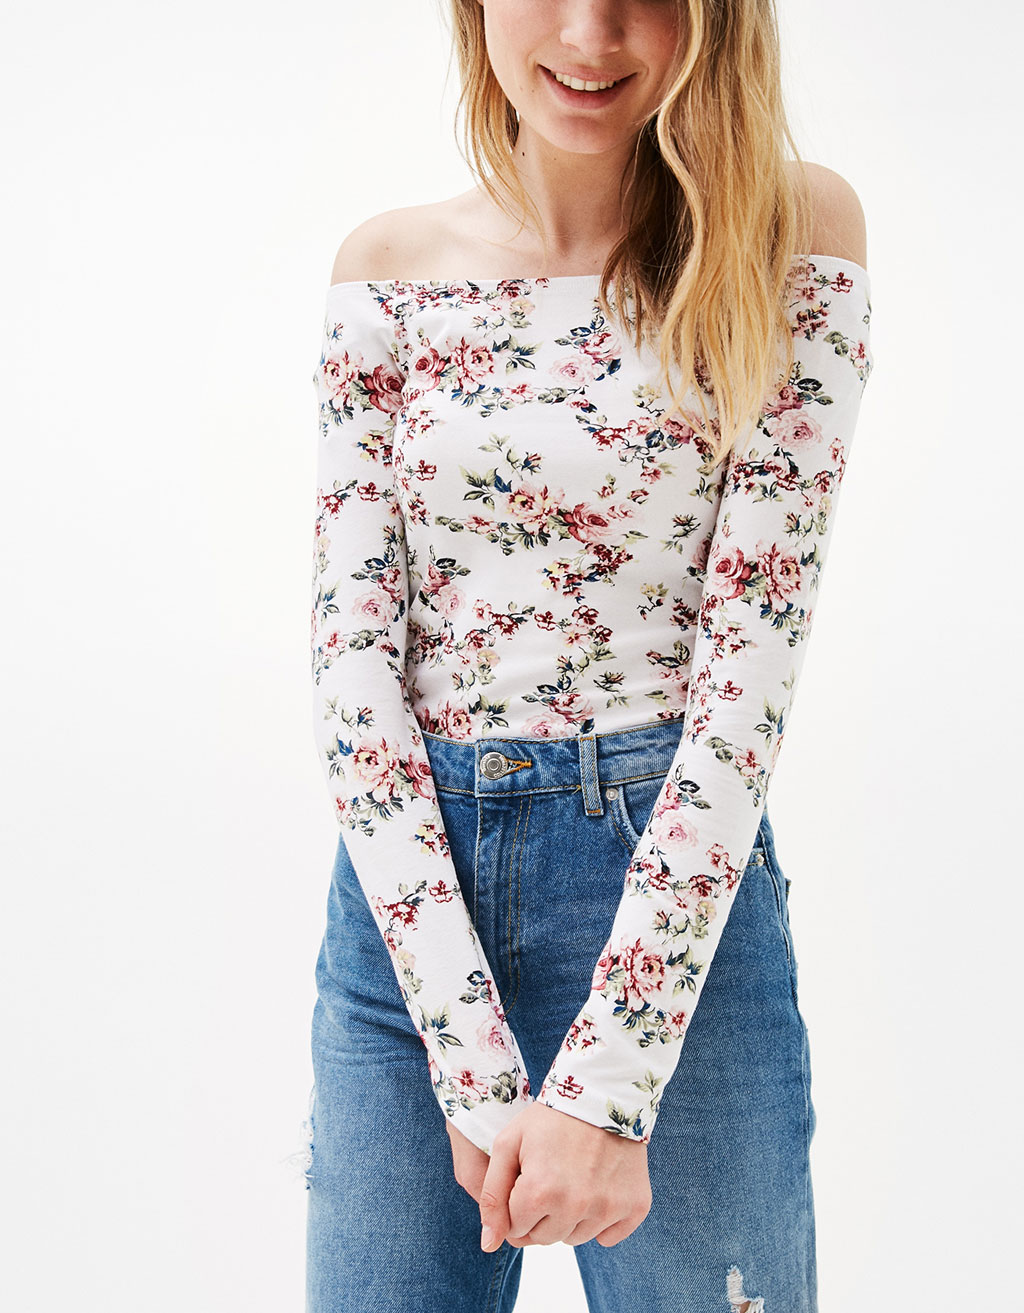 Fitted T-shirt with off-the-shoulder neckline